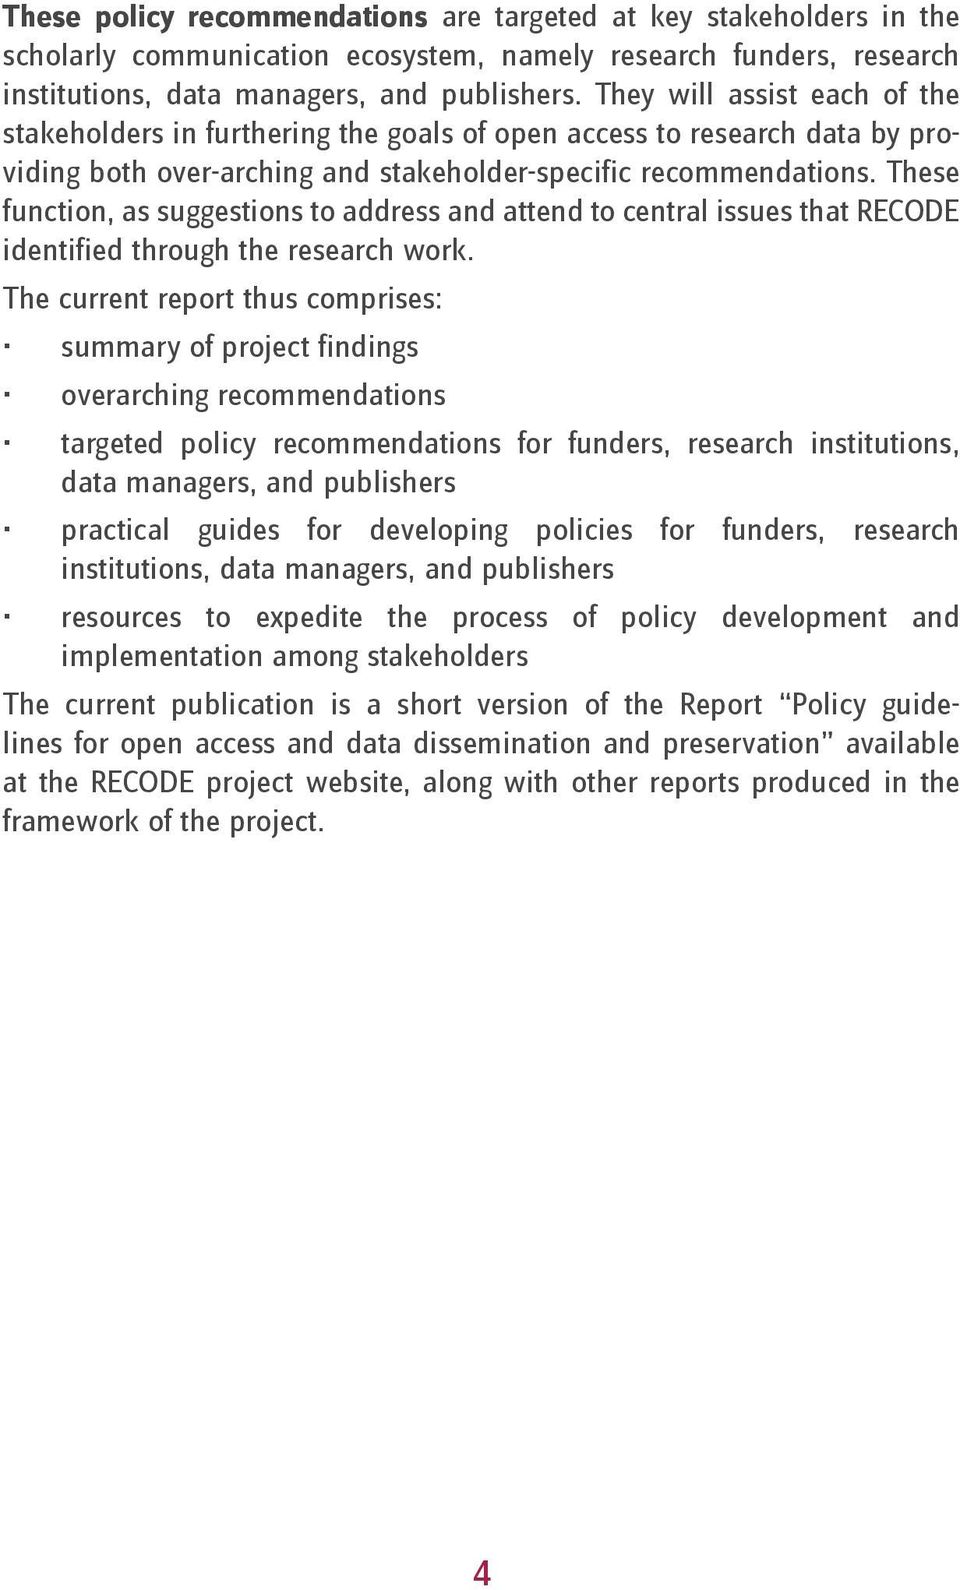 These function, as suggestions to address and attend to central issues that RECODE identified through the research work.